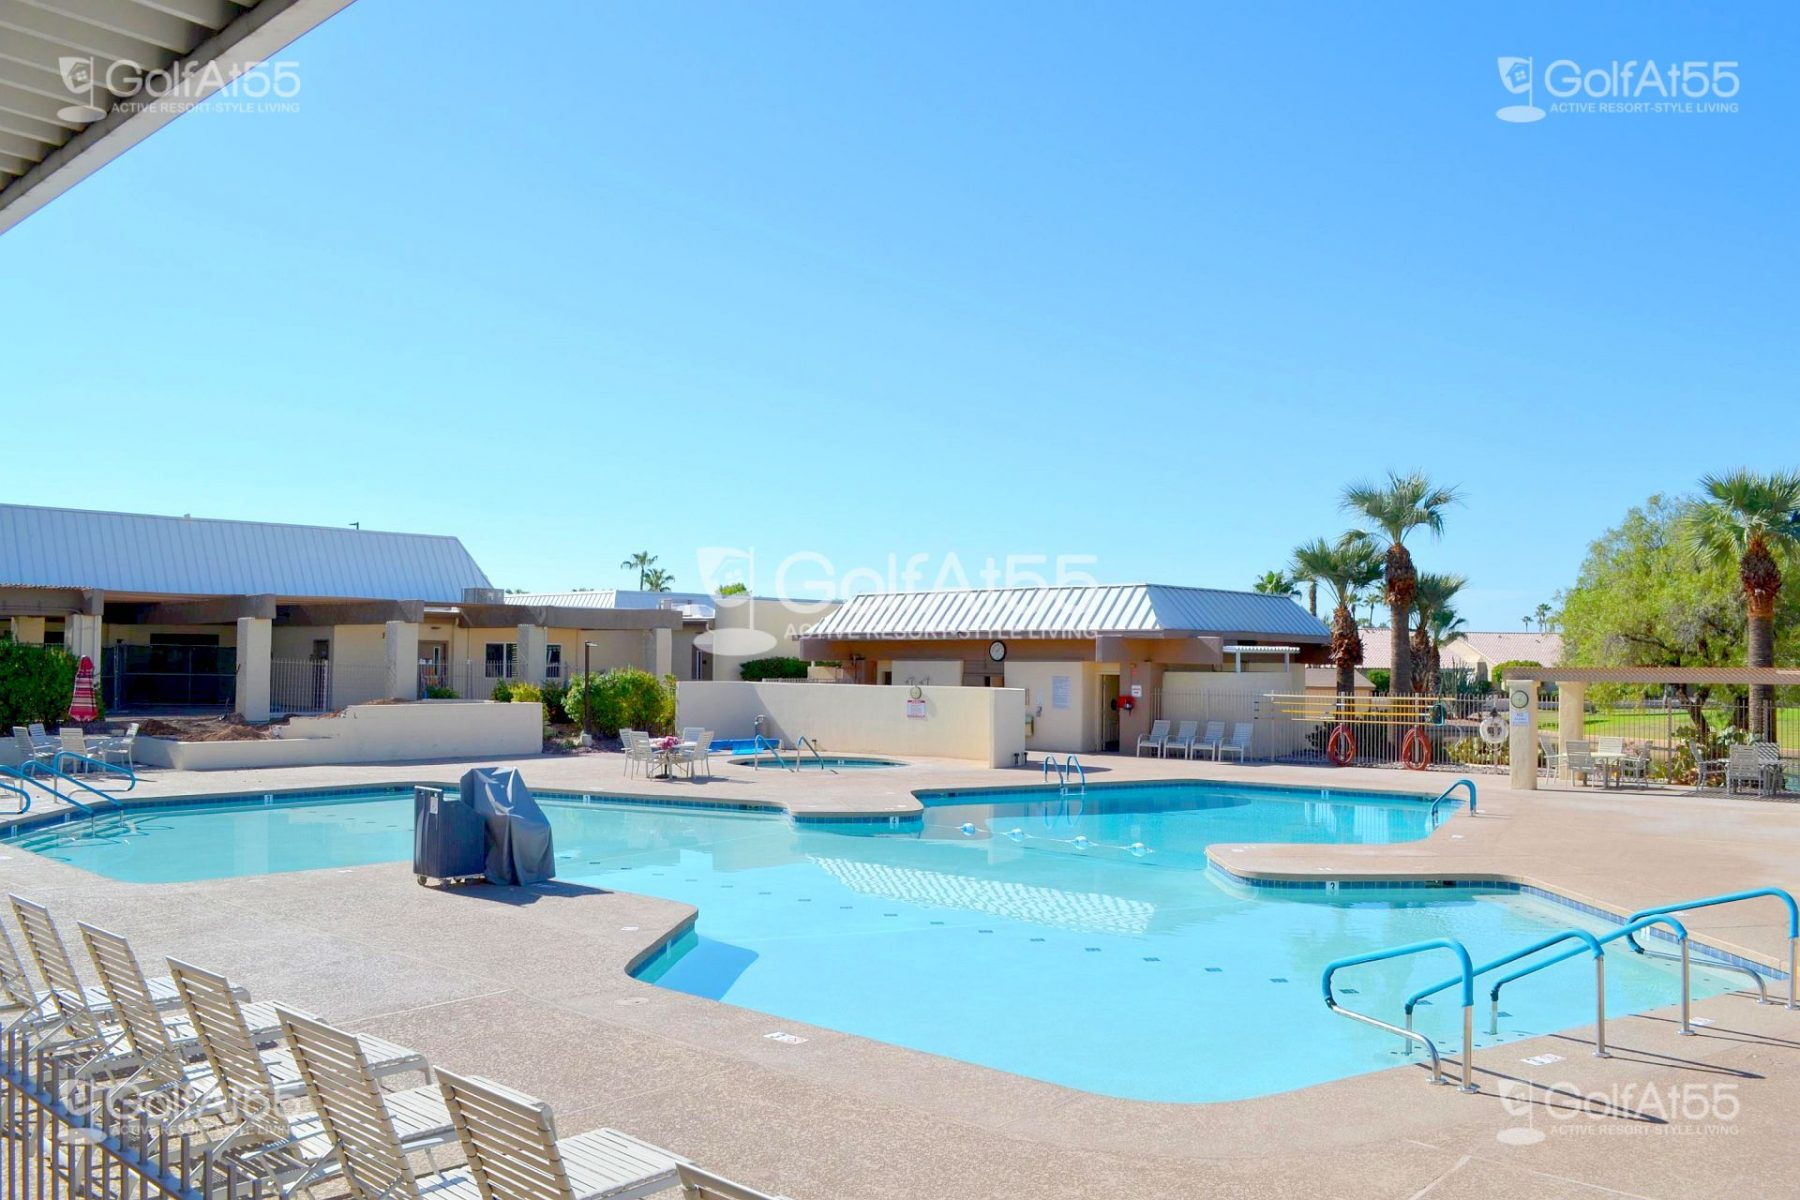 Fountain of the sun homes for sale real estate for Pool fill in mesa az